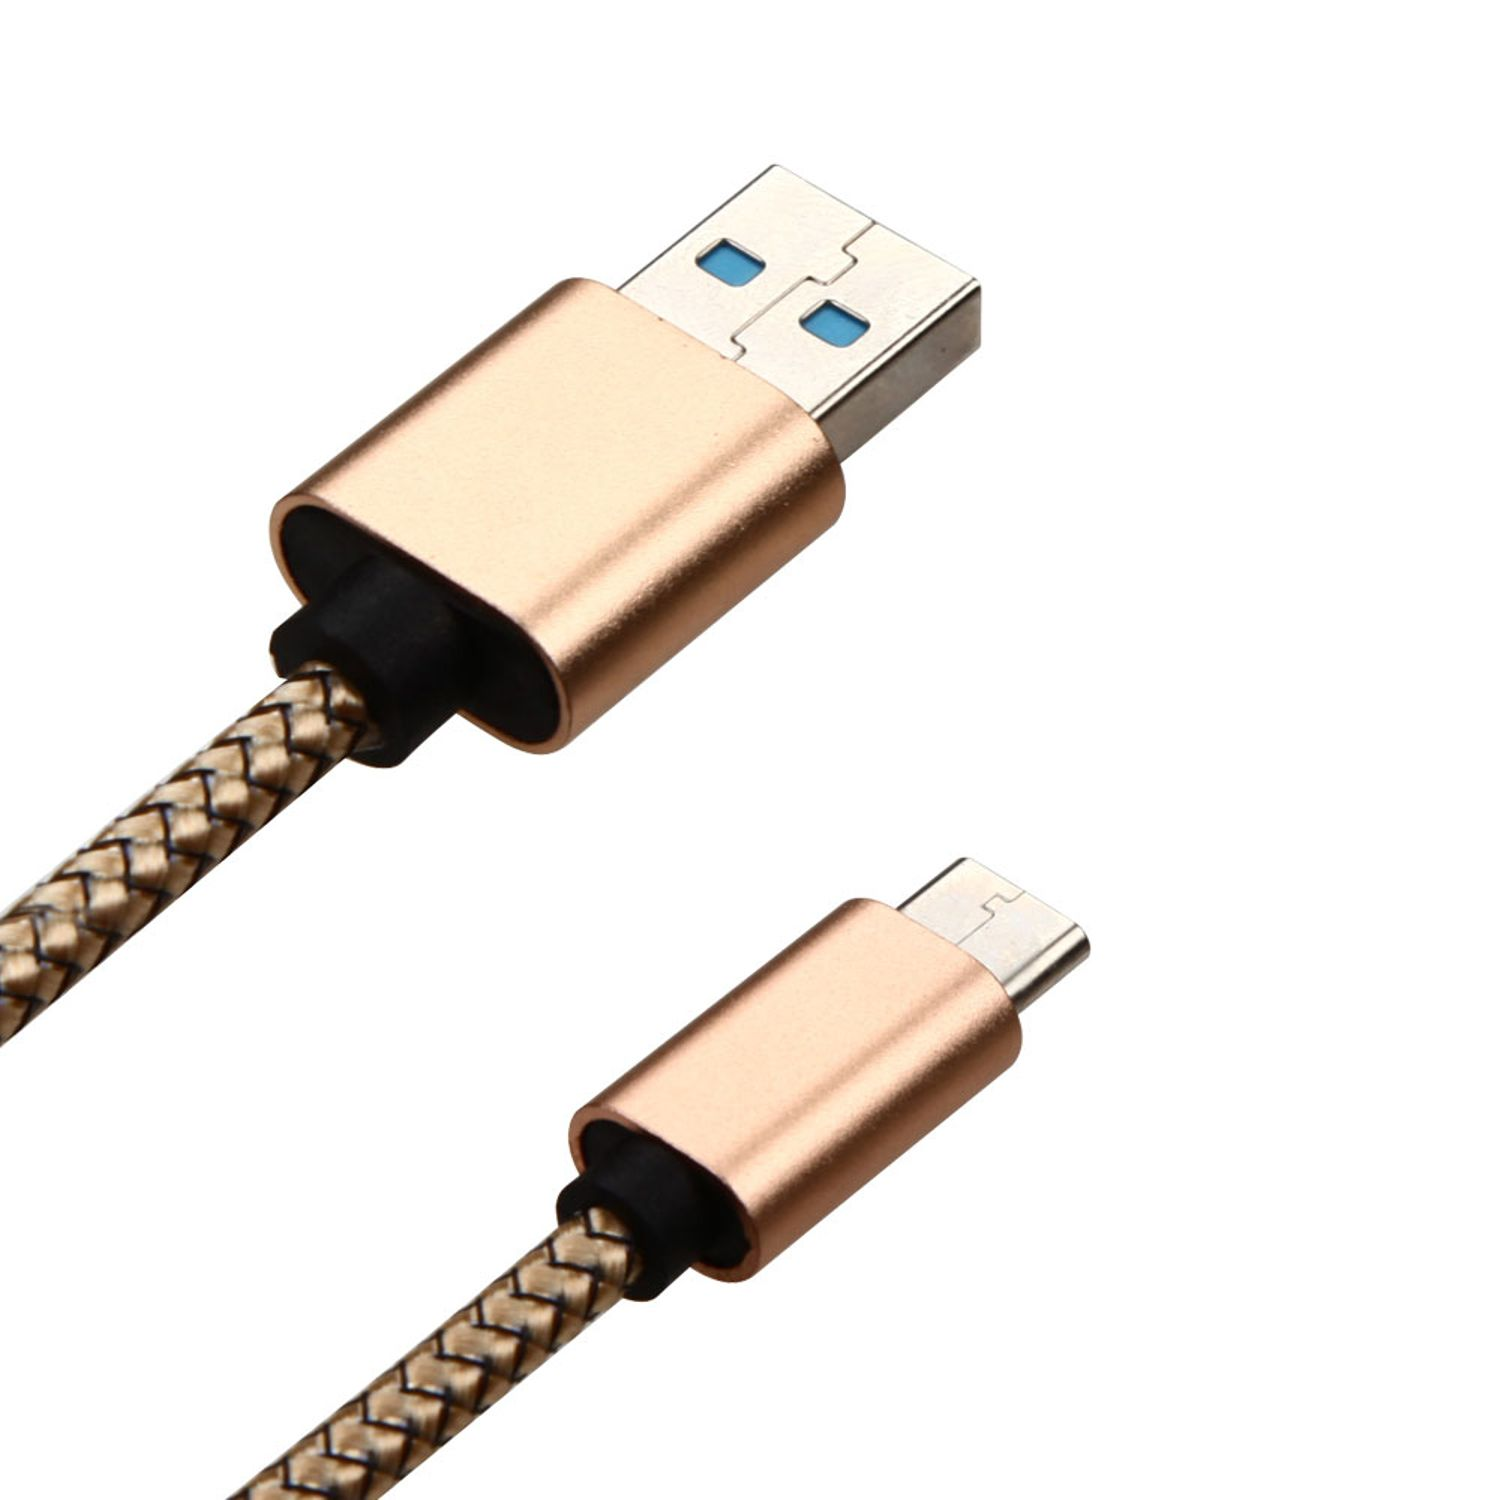 Insten 3.3ft USB Type-C Braided Leather Charging Data Sync Cable Type C Cord with Aluminum Alloy Connector Encapsulation